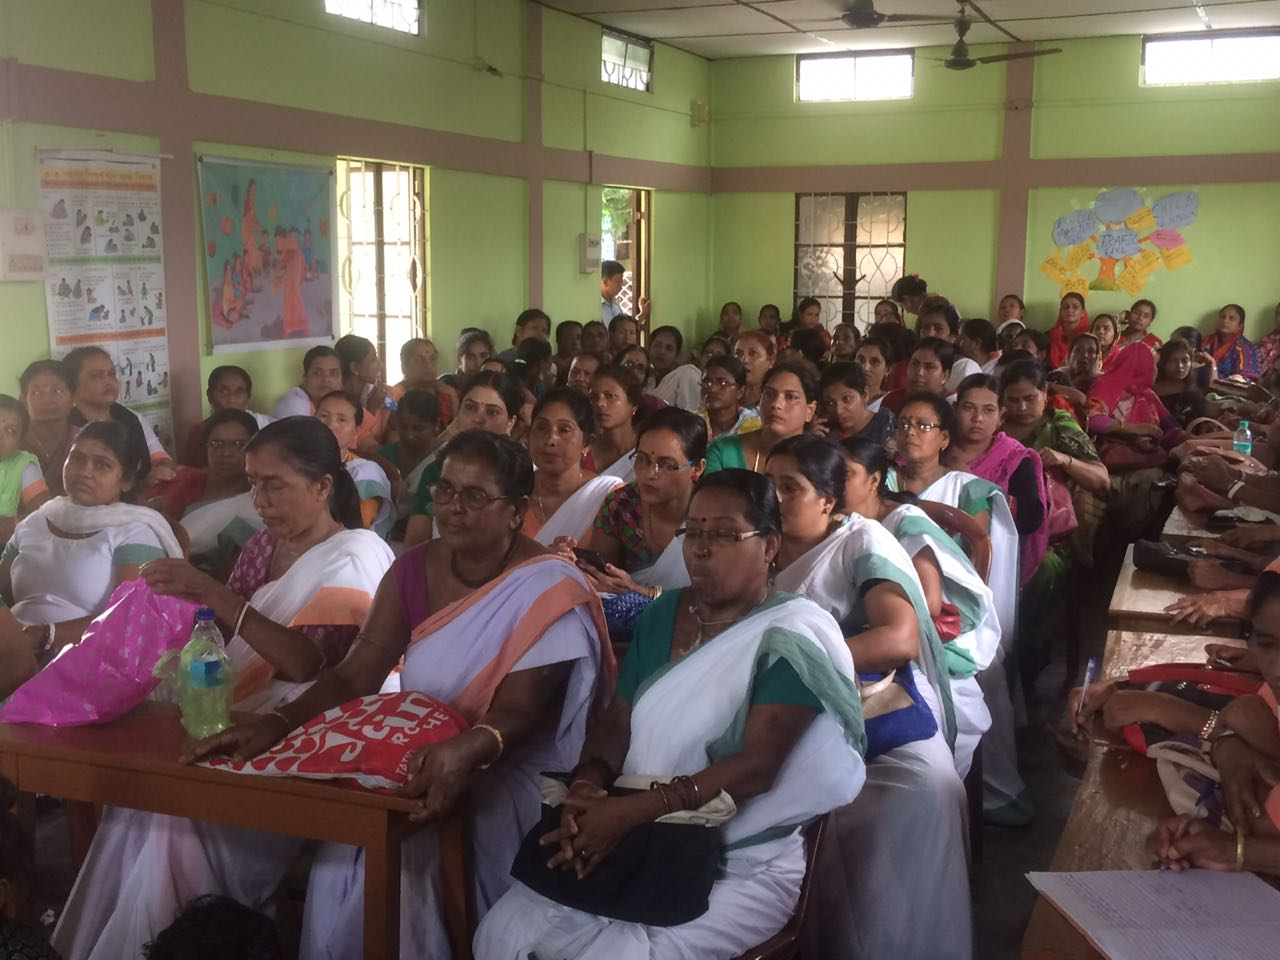 Extremely thankful to the Anganwadi workers and helpers from Borjalanga village & Silchar outskirt rural areas for coming in-spite of the difficult transport, distance & challenging hot weather. Anganwadi is a type of rural child care centre in India. They were started by the Indian government in 1975 as part of the Integrated Child Development Services (ICDS) program to combat child hunger and malnutrition. They help in providing basic education for children and enrolling women to undertake antenatal care. They are also responsible for immunization of children and pregnant women. had enormous rounds of interactions with Anganwadi workers and how they can collectively come together to support Breast Cancer awareness & explain Breast self examination since the Anganwadi workers have direct outreach to the rural sectors – mothers who bring their children to them, women undertaking antenatal care, and other women from various divisions. They have a great opportunity to take the message forward (I will guide them through & through) to the rural India.